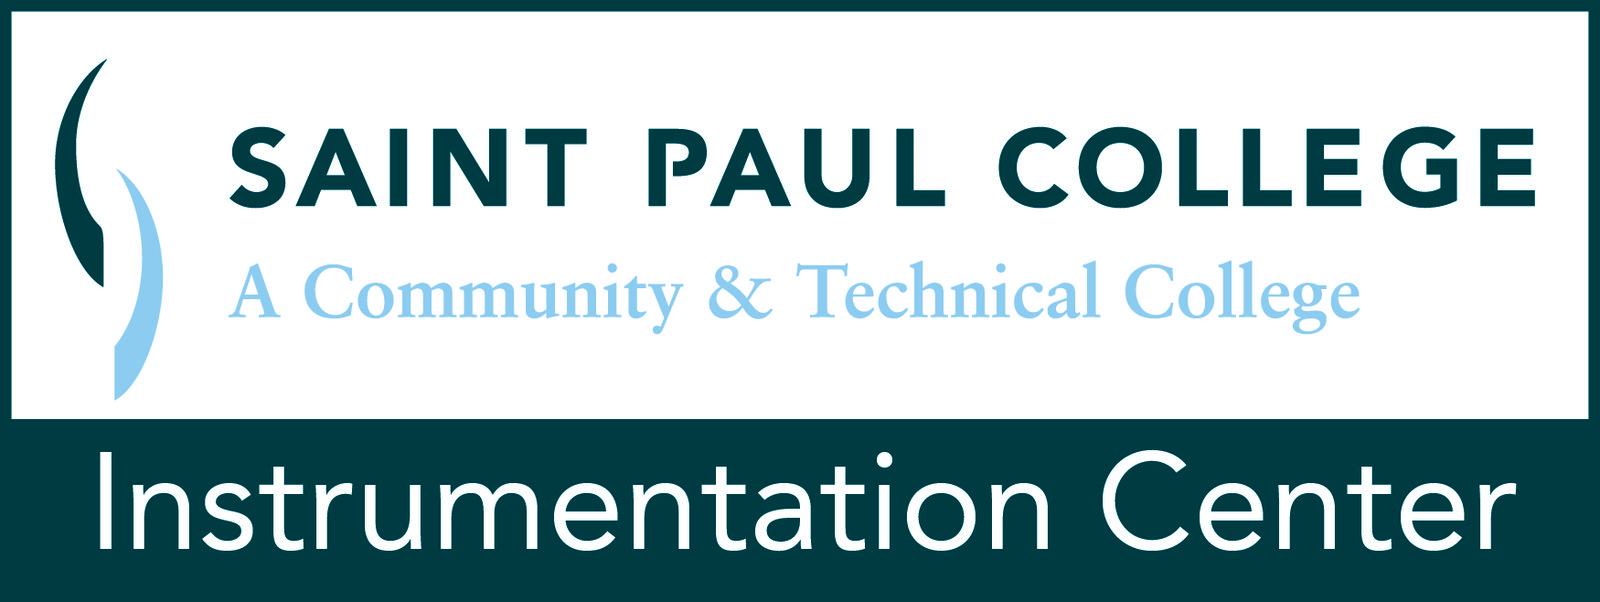 Saint Paul College- Instrumentation Center